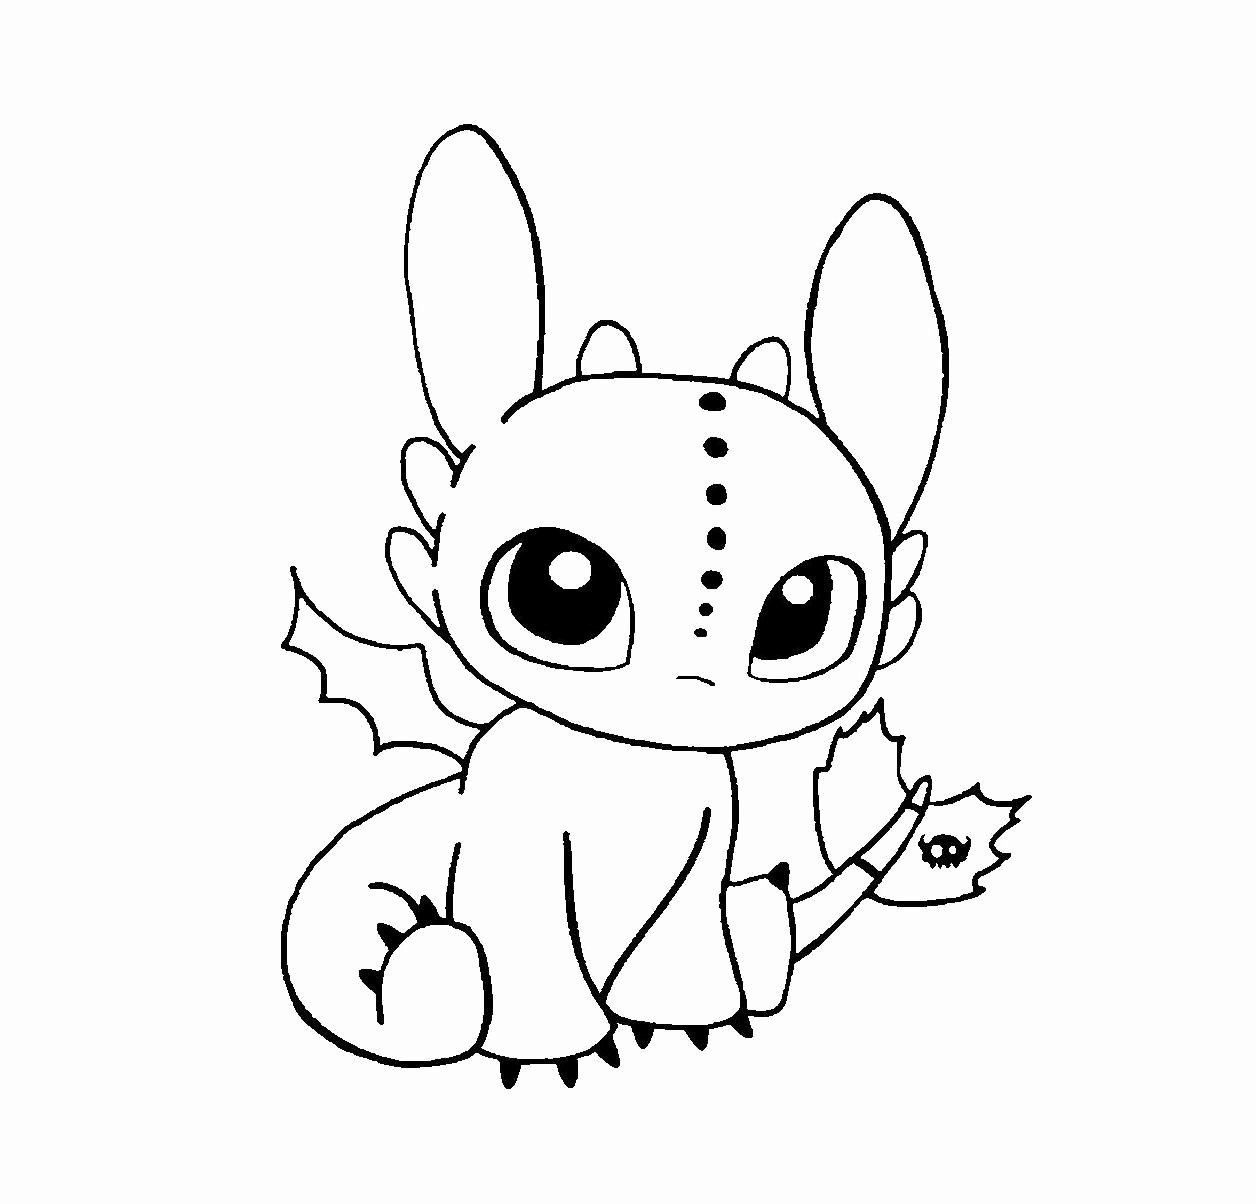 Baby Dragon Coloring Page Unique Toothless Baby Crafts In 2019 In 2020 Dragon Coloring Page Cute Toothless Dragon Drawing